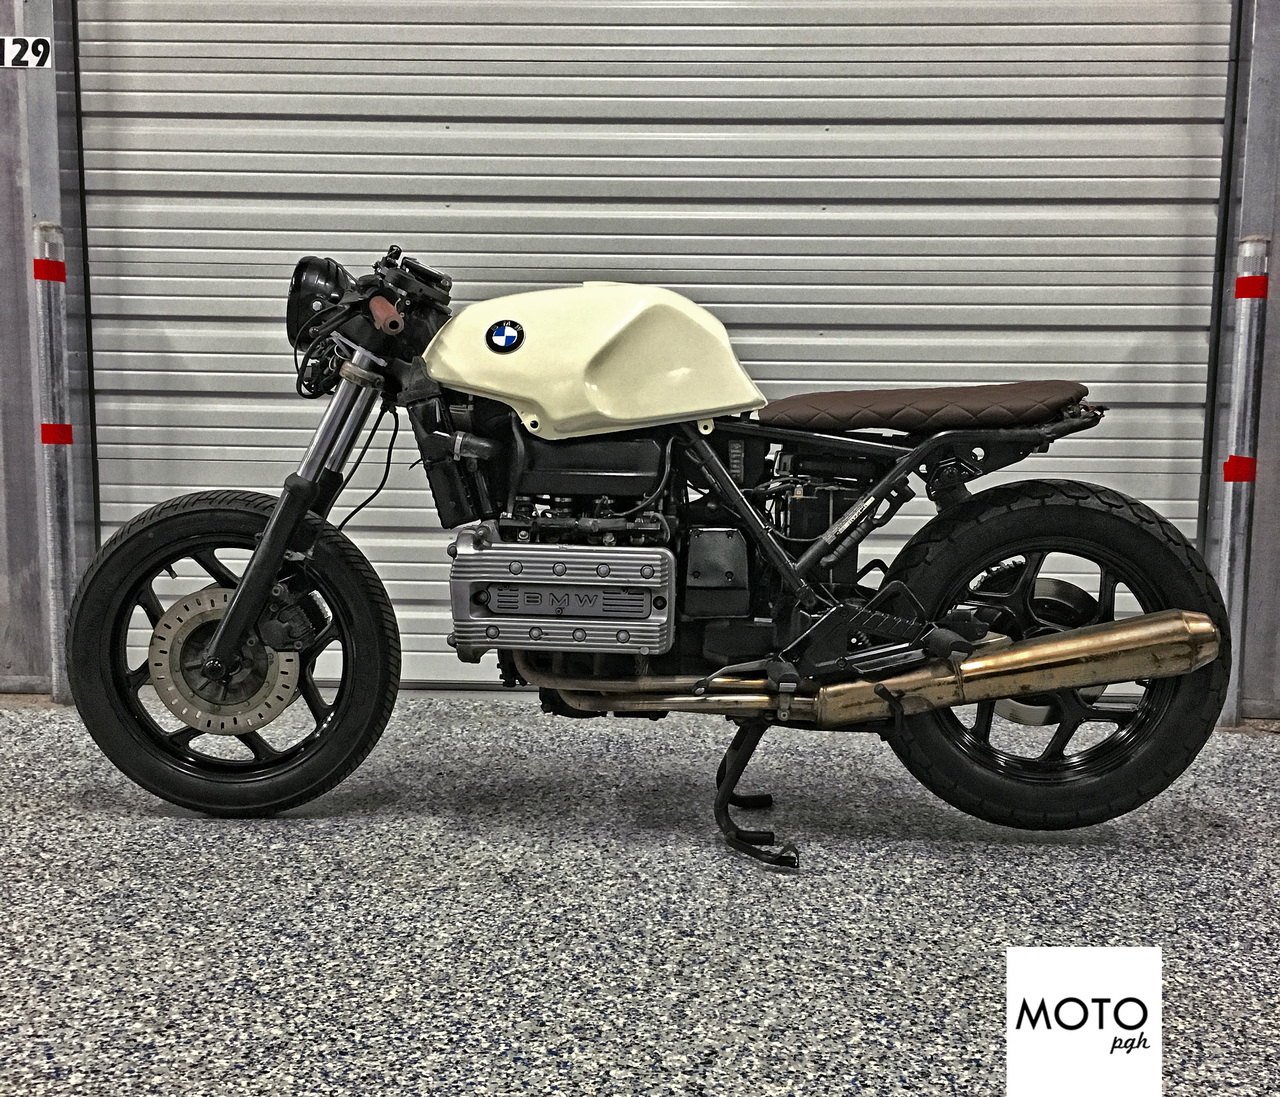 BMW K100RT 1987 images #12222